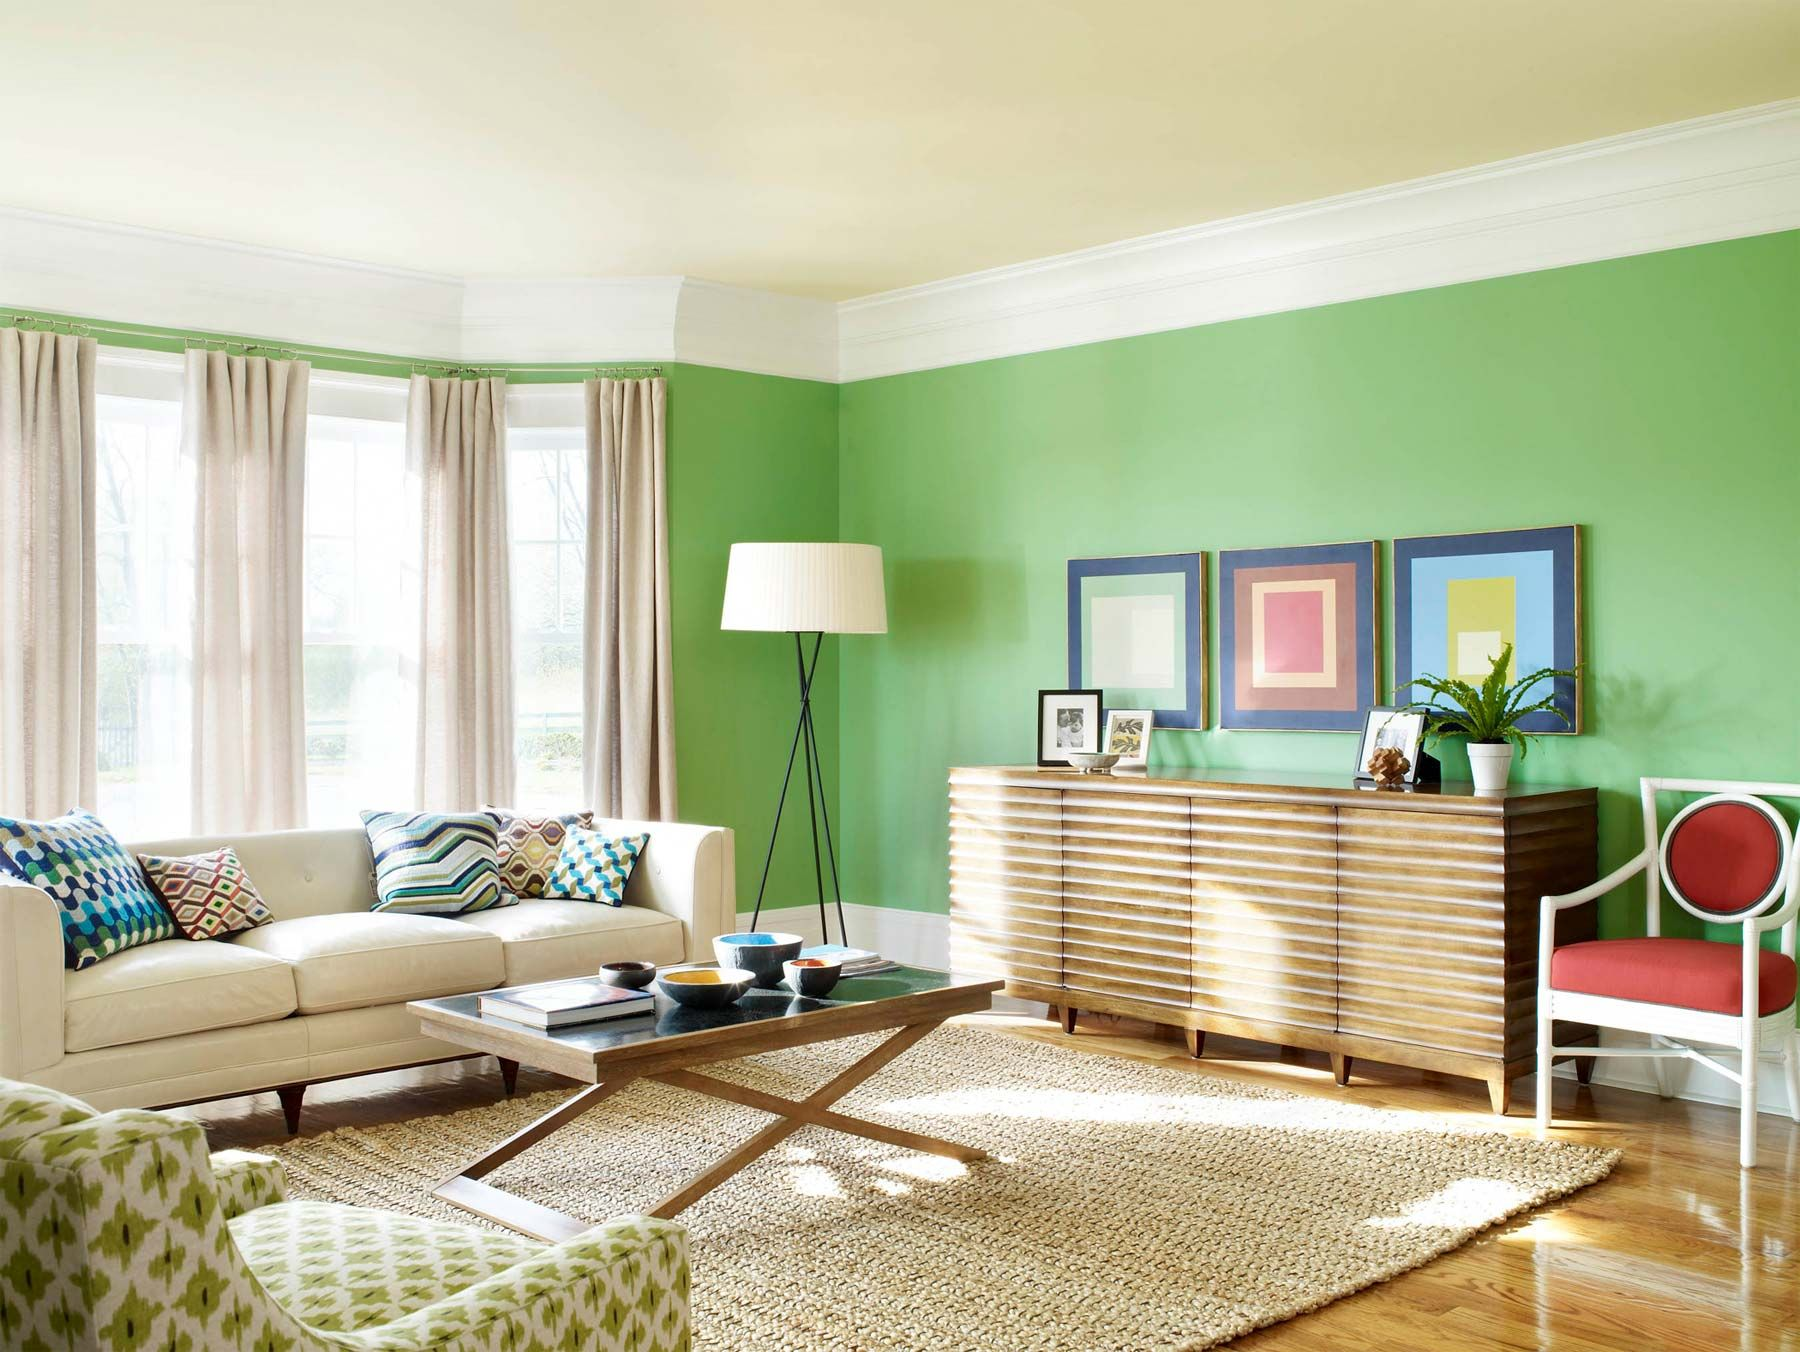 House Interior Color Design